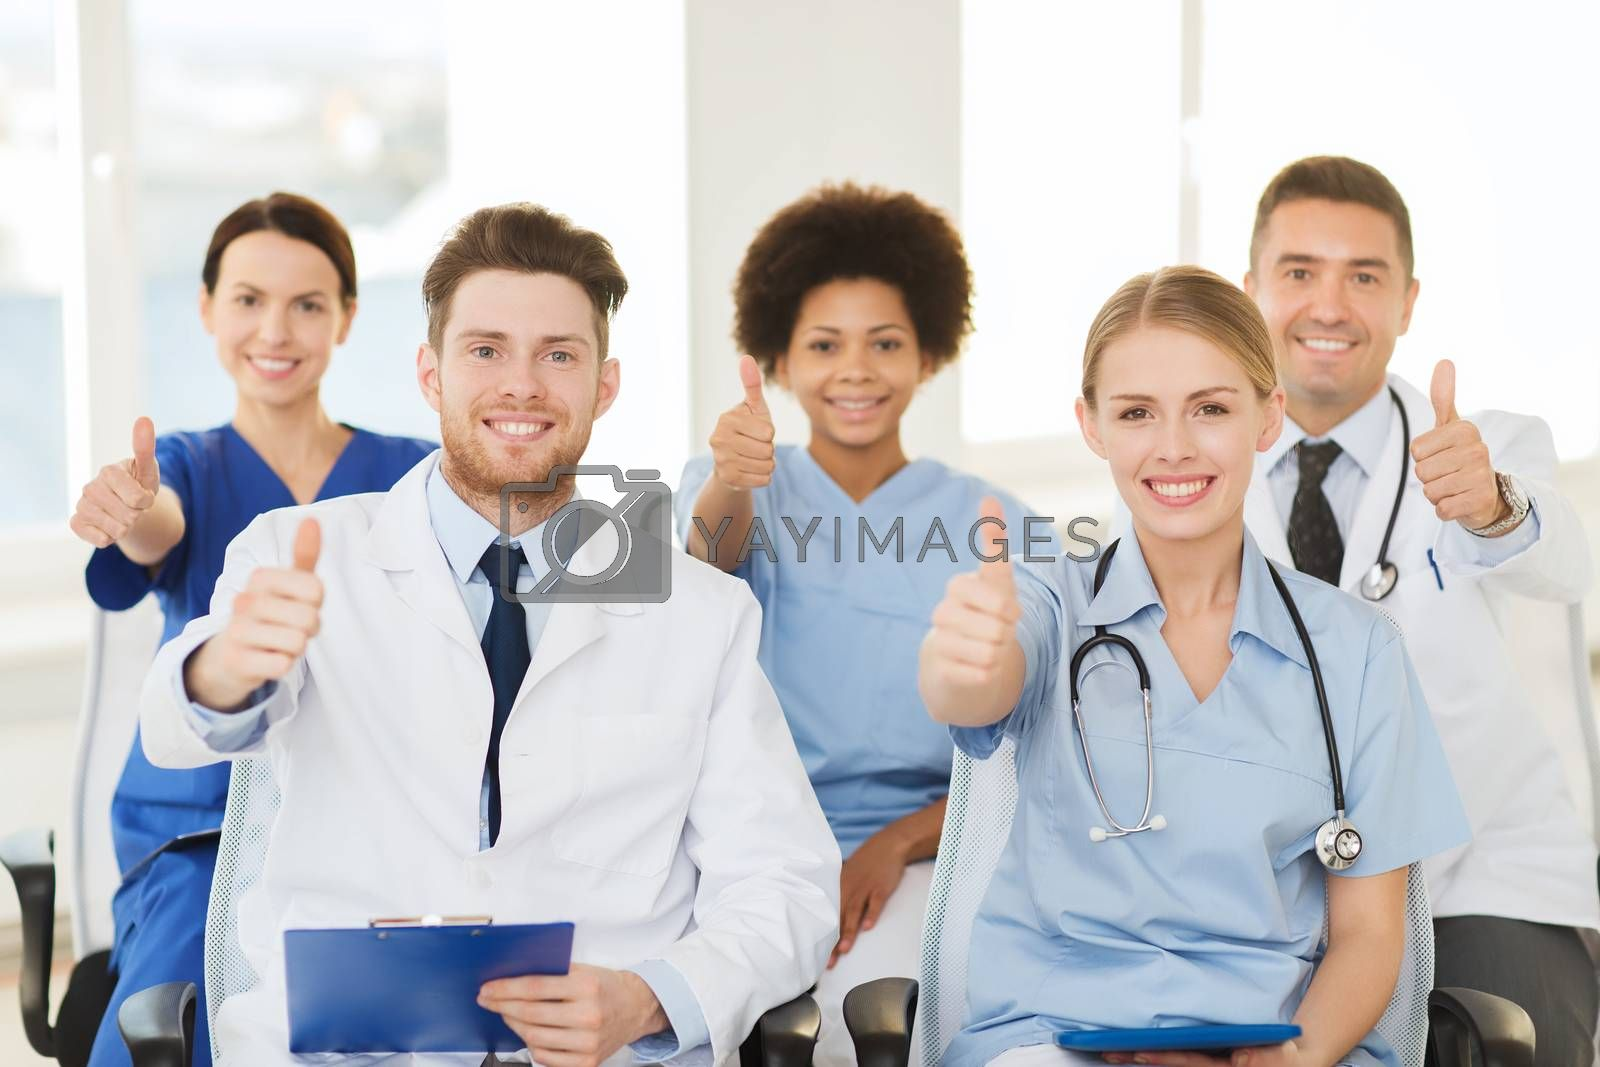 hospital, profession, people and medicine concept - group of happy doctors on seminar in lecture hall at hospital showing thumbs up gesture